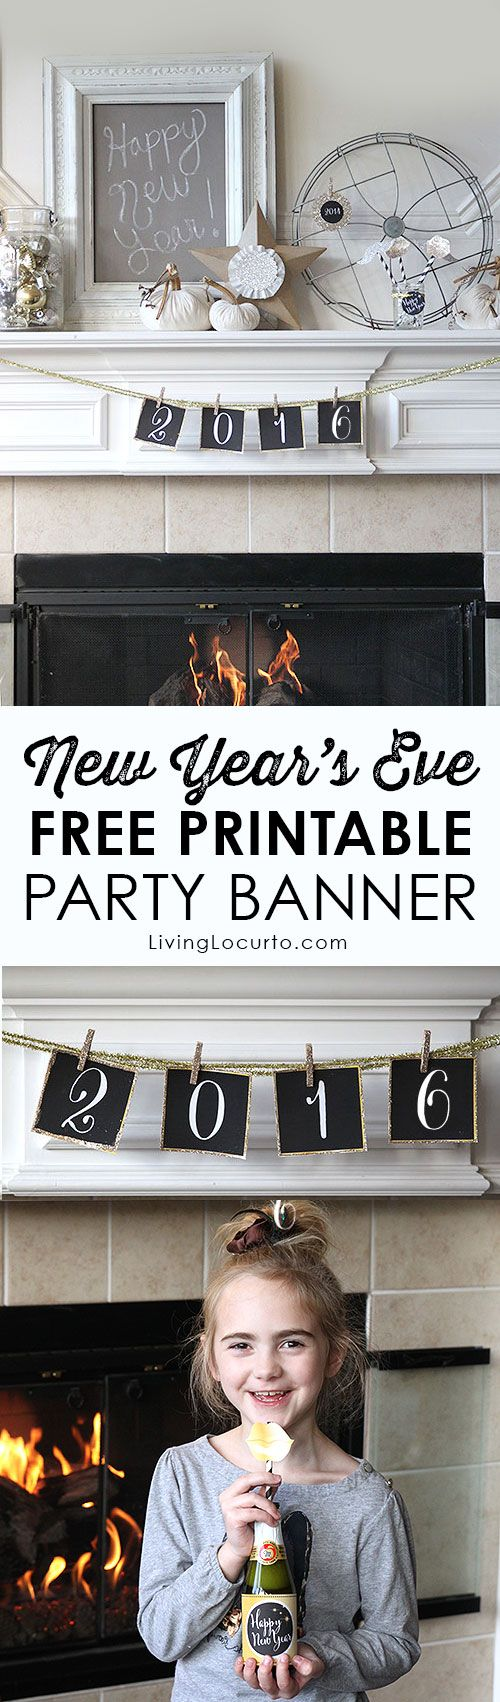 Free Printable 2016 New Year's Eve Party Banner! Chalkboard with white lettering. LivingLocurto.com